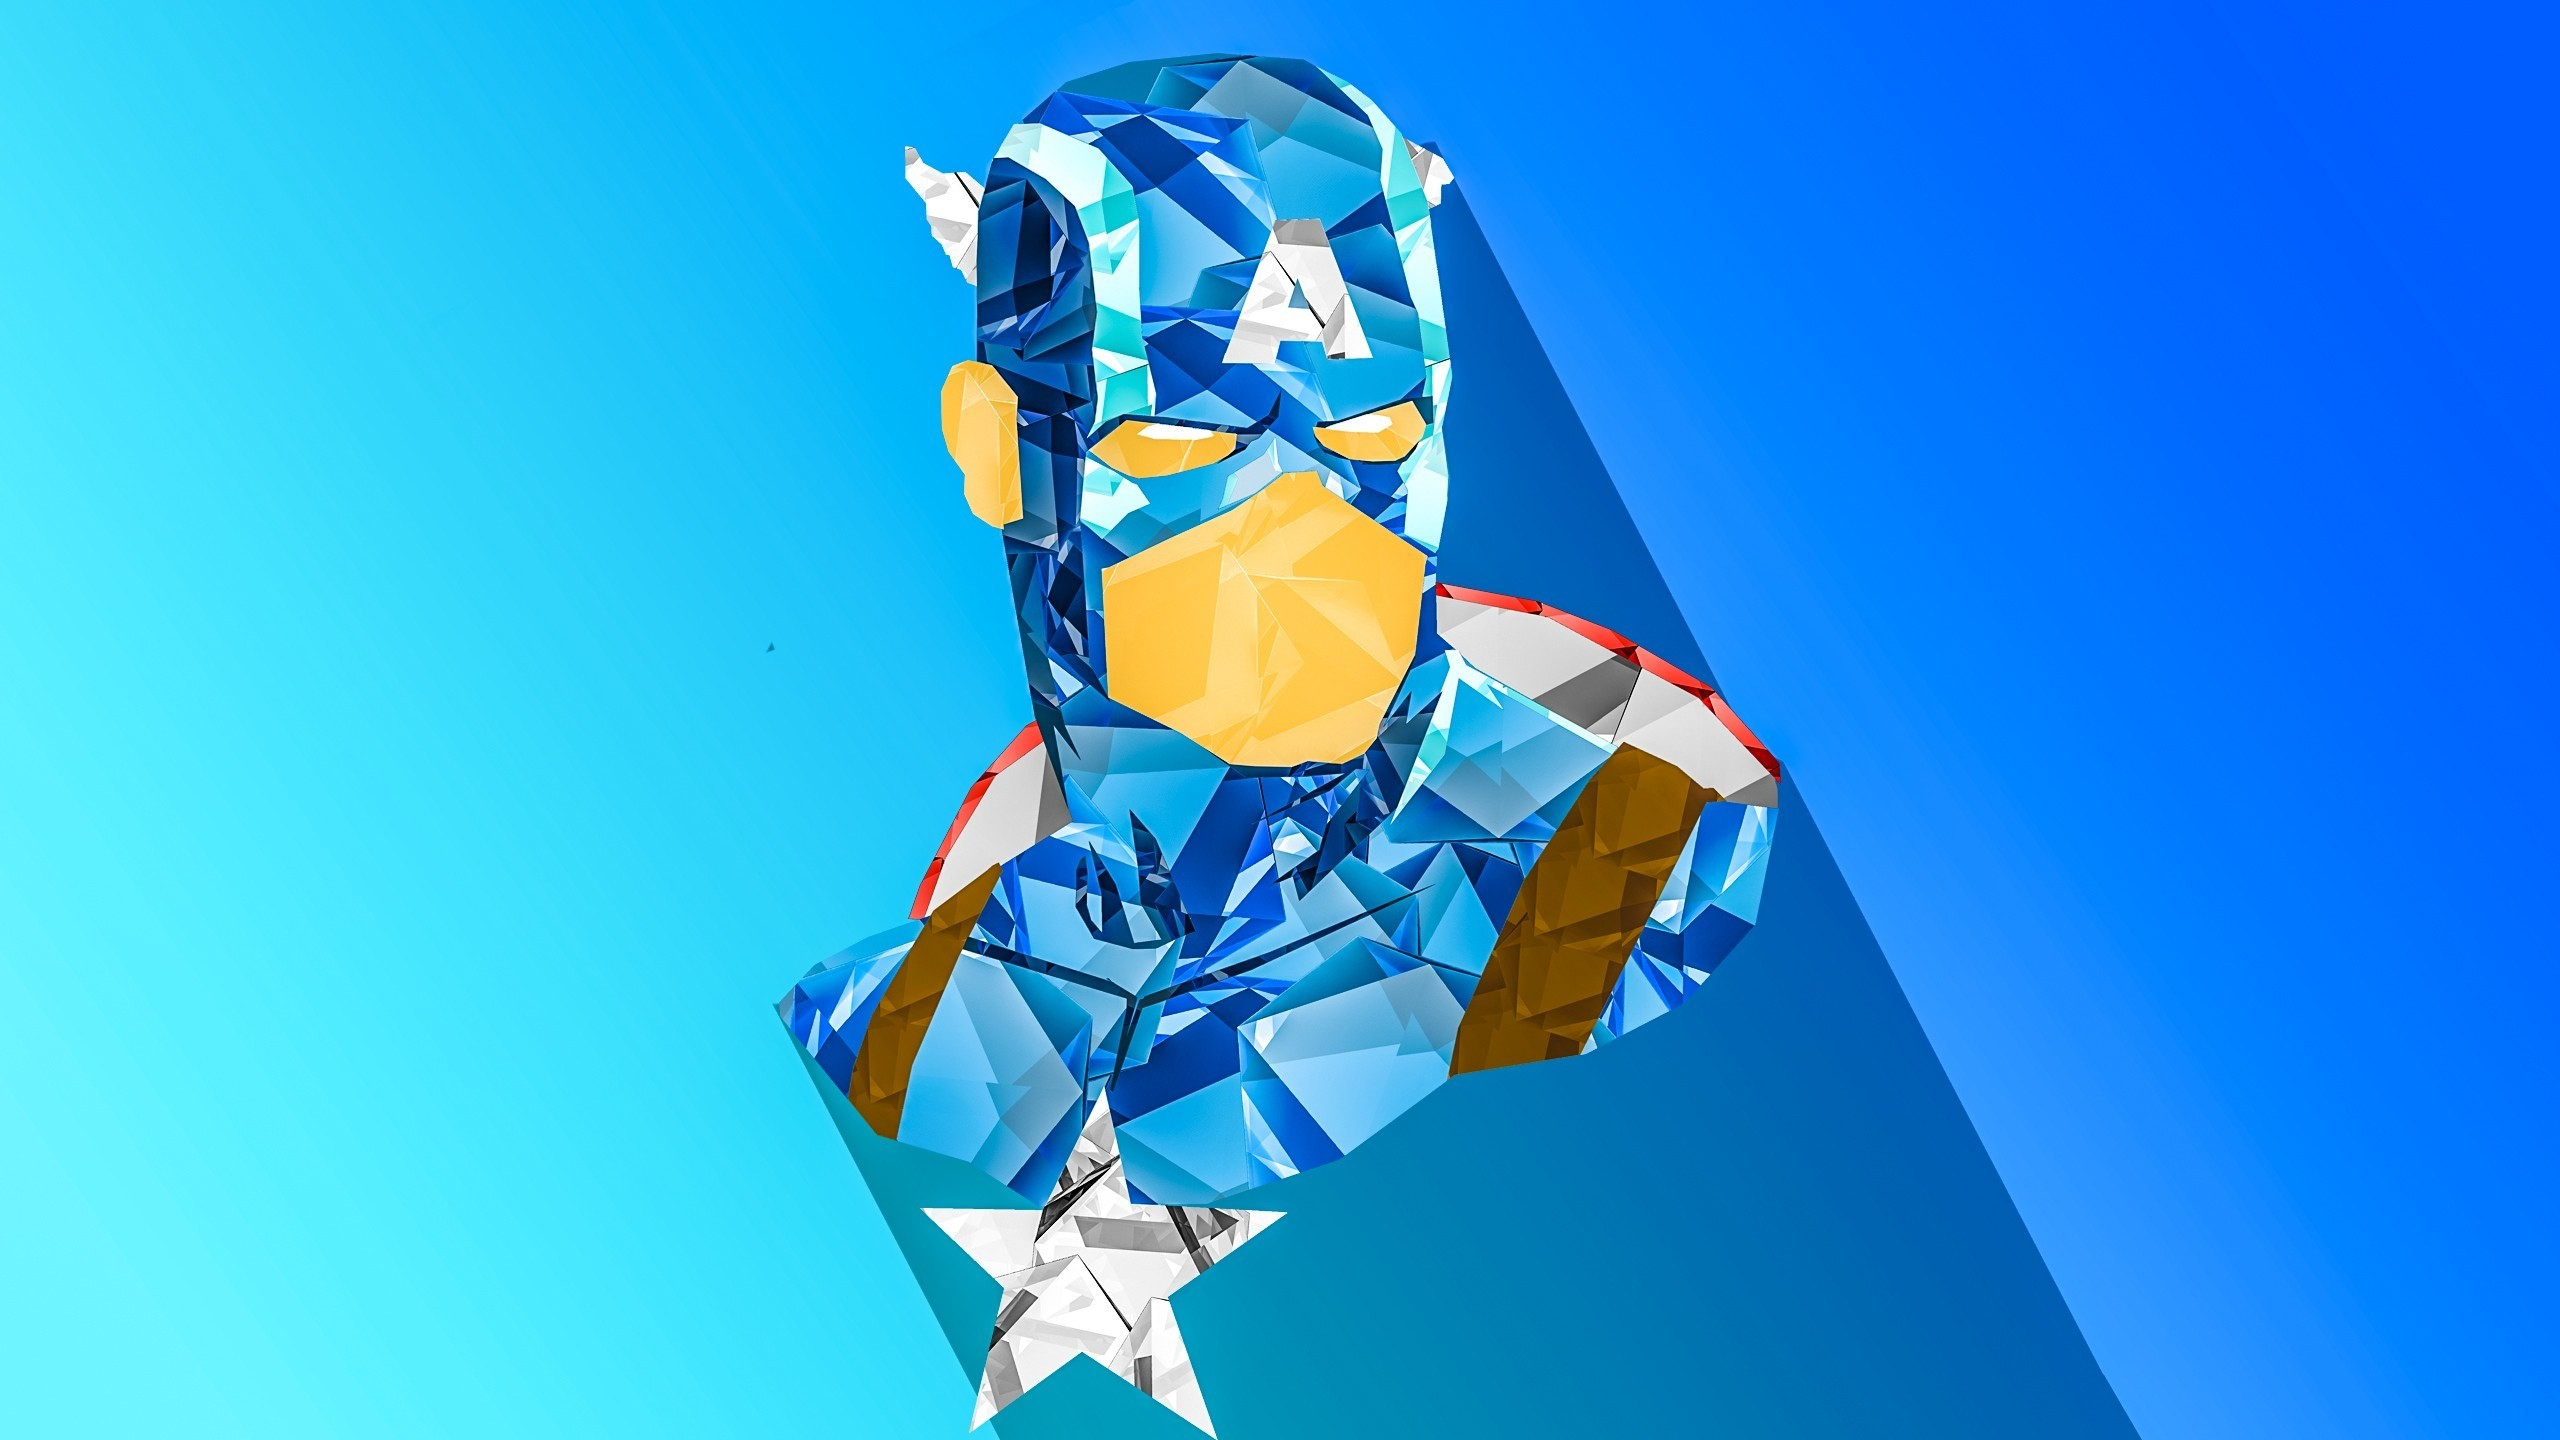 250 Facets Hd Wallpapers Backgrounds Wallpaper Abyss